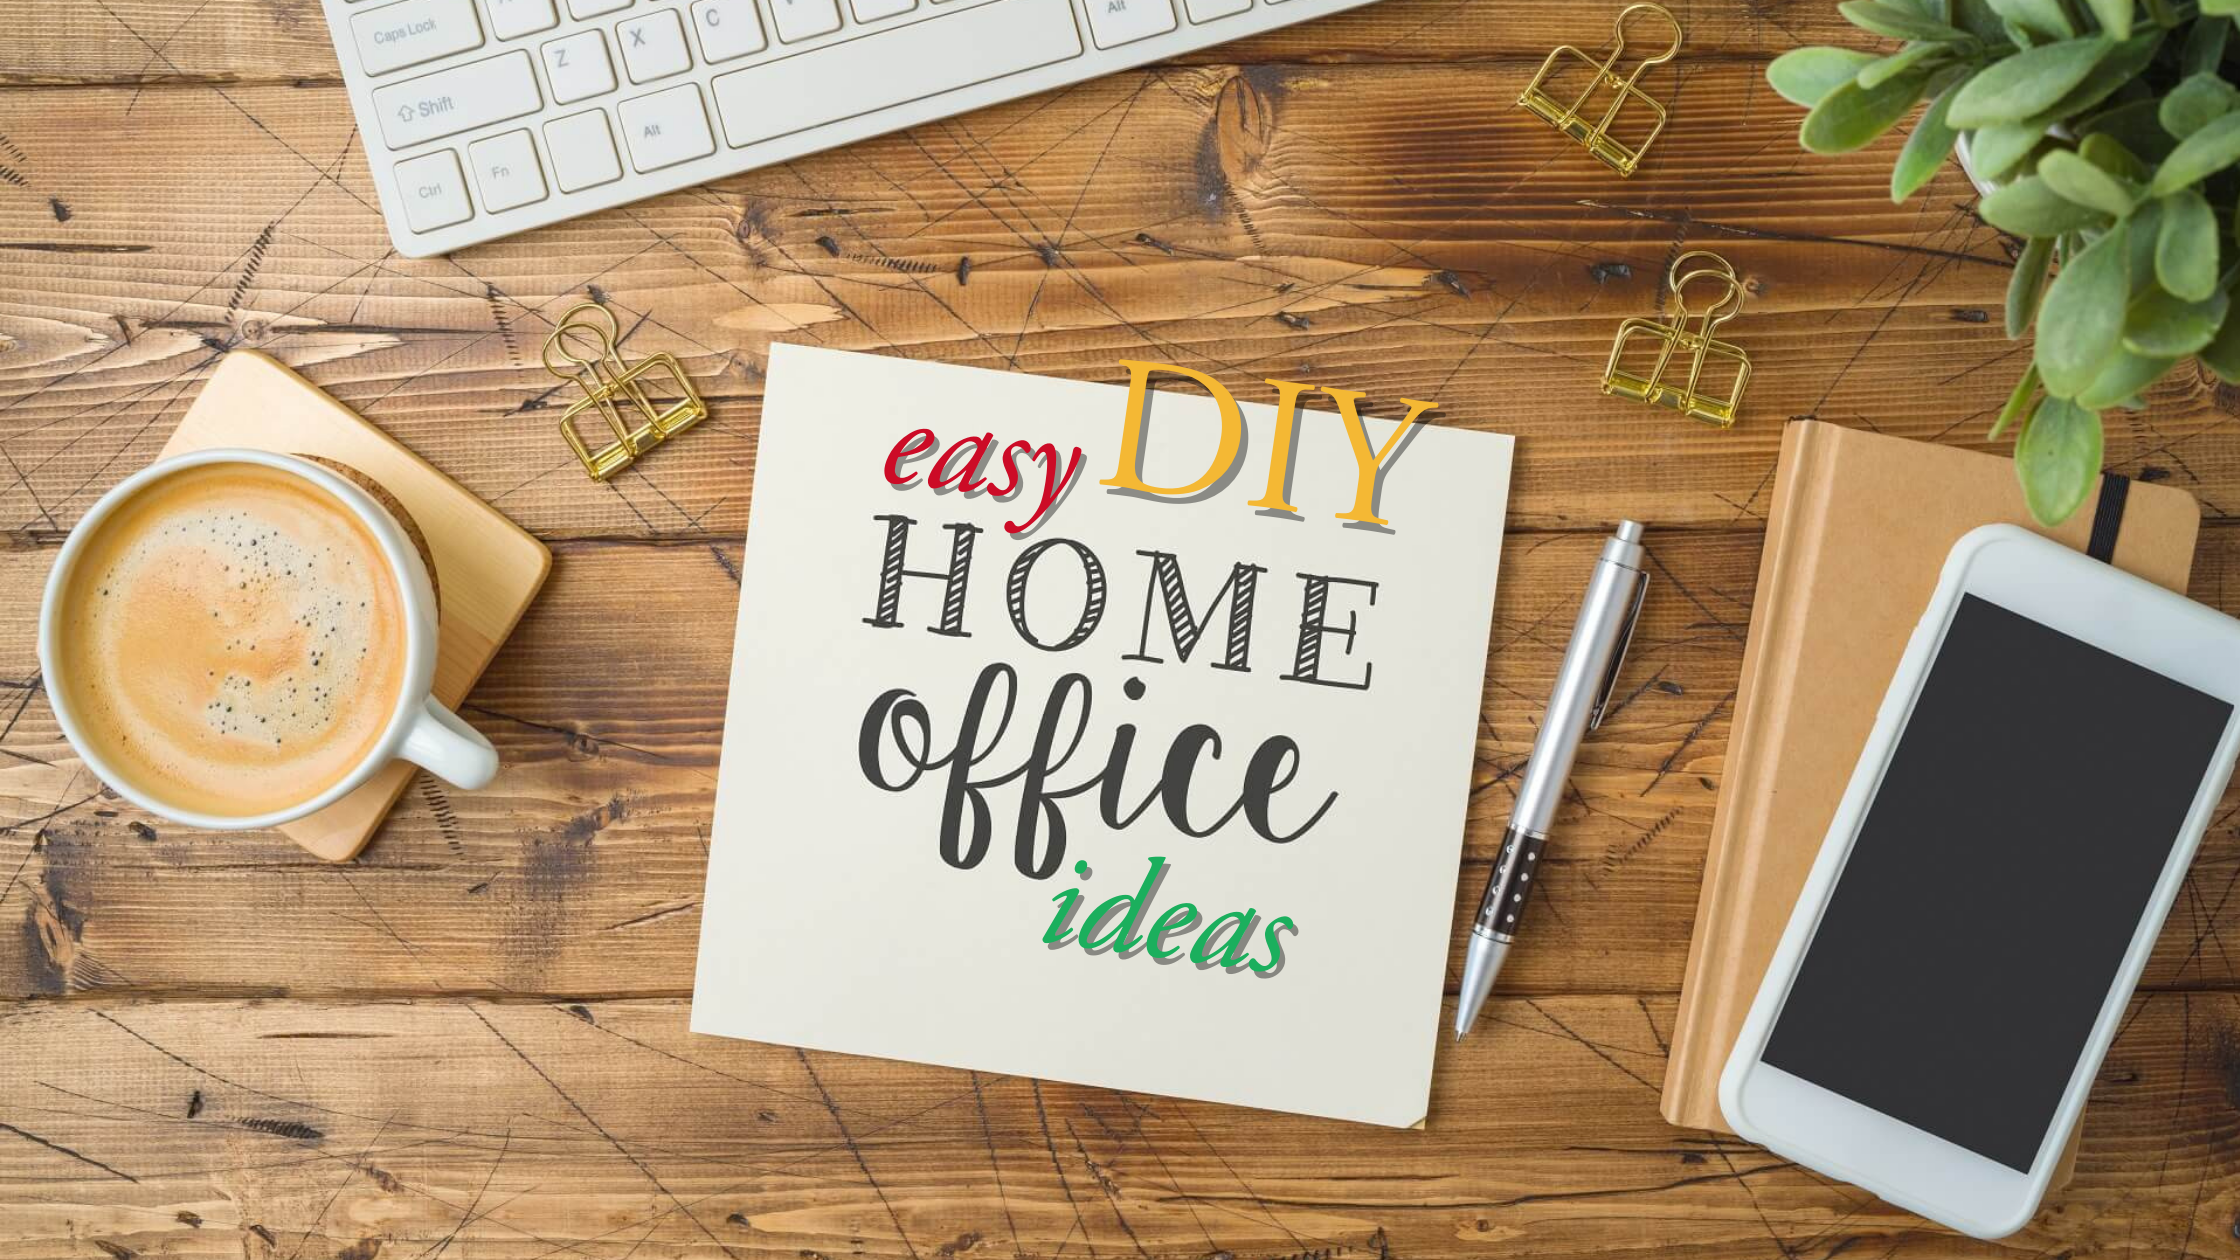 easy DIY home office ideas for your home